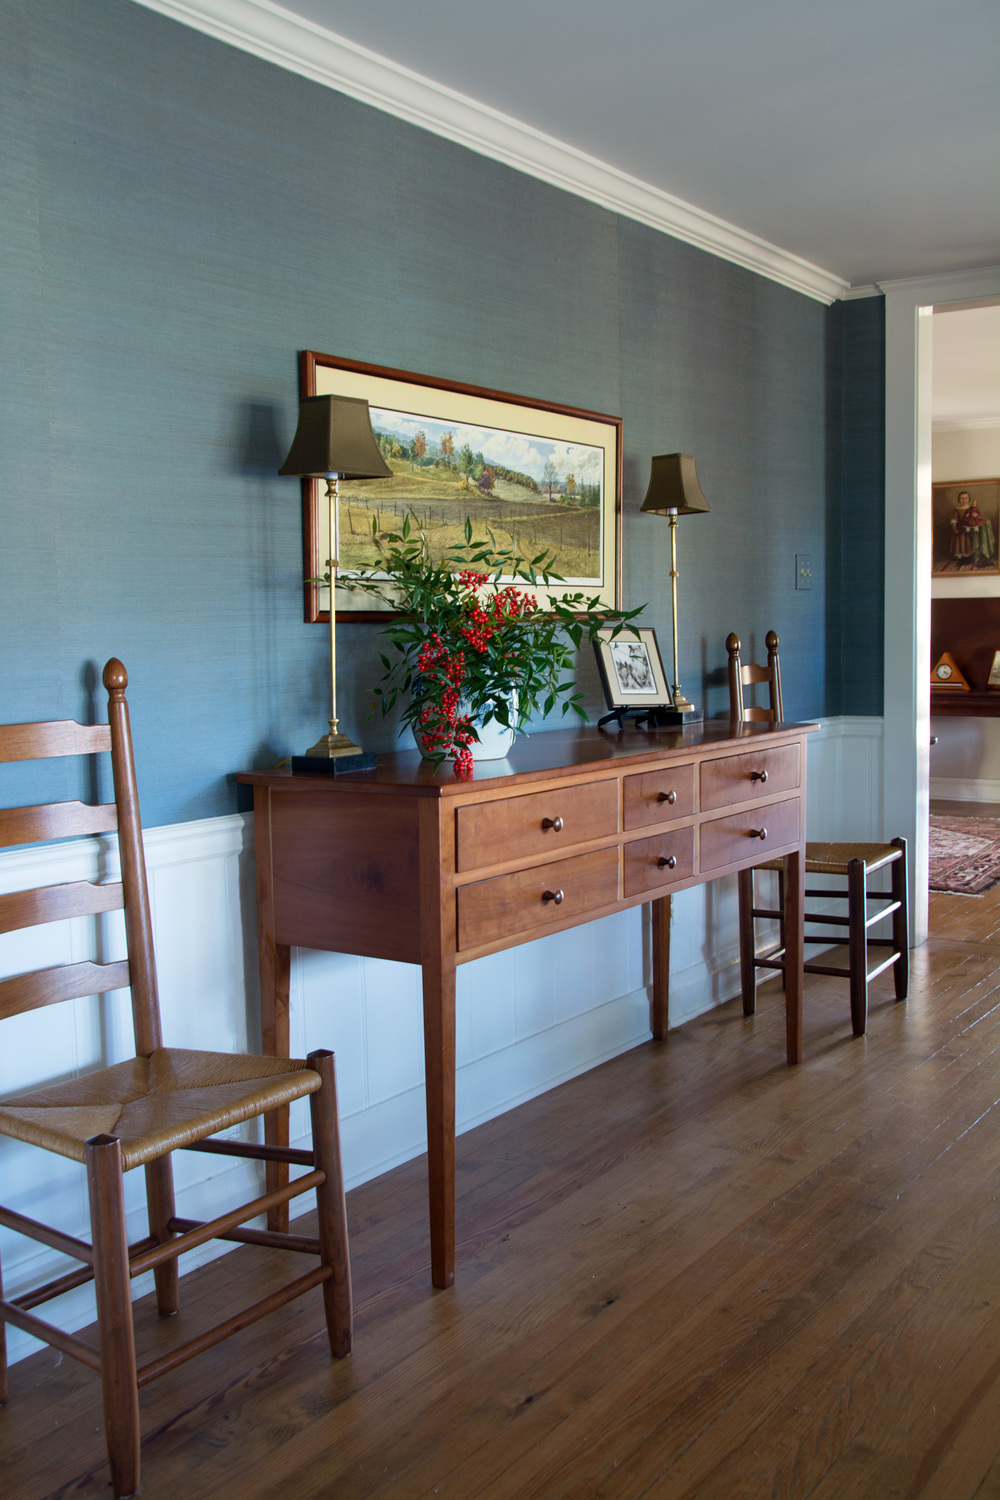 Deep in the heart of Virginia horse country this equestrian farm client wanted to maintain her traditional style, while providing updated colors and accessories.  We added a rich blue grasscloth and buffet lamps and rearranged her art in this dining room.